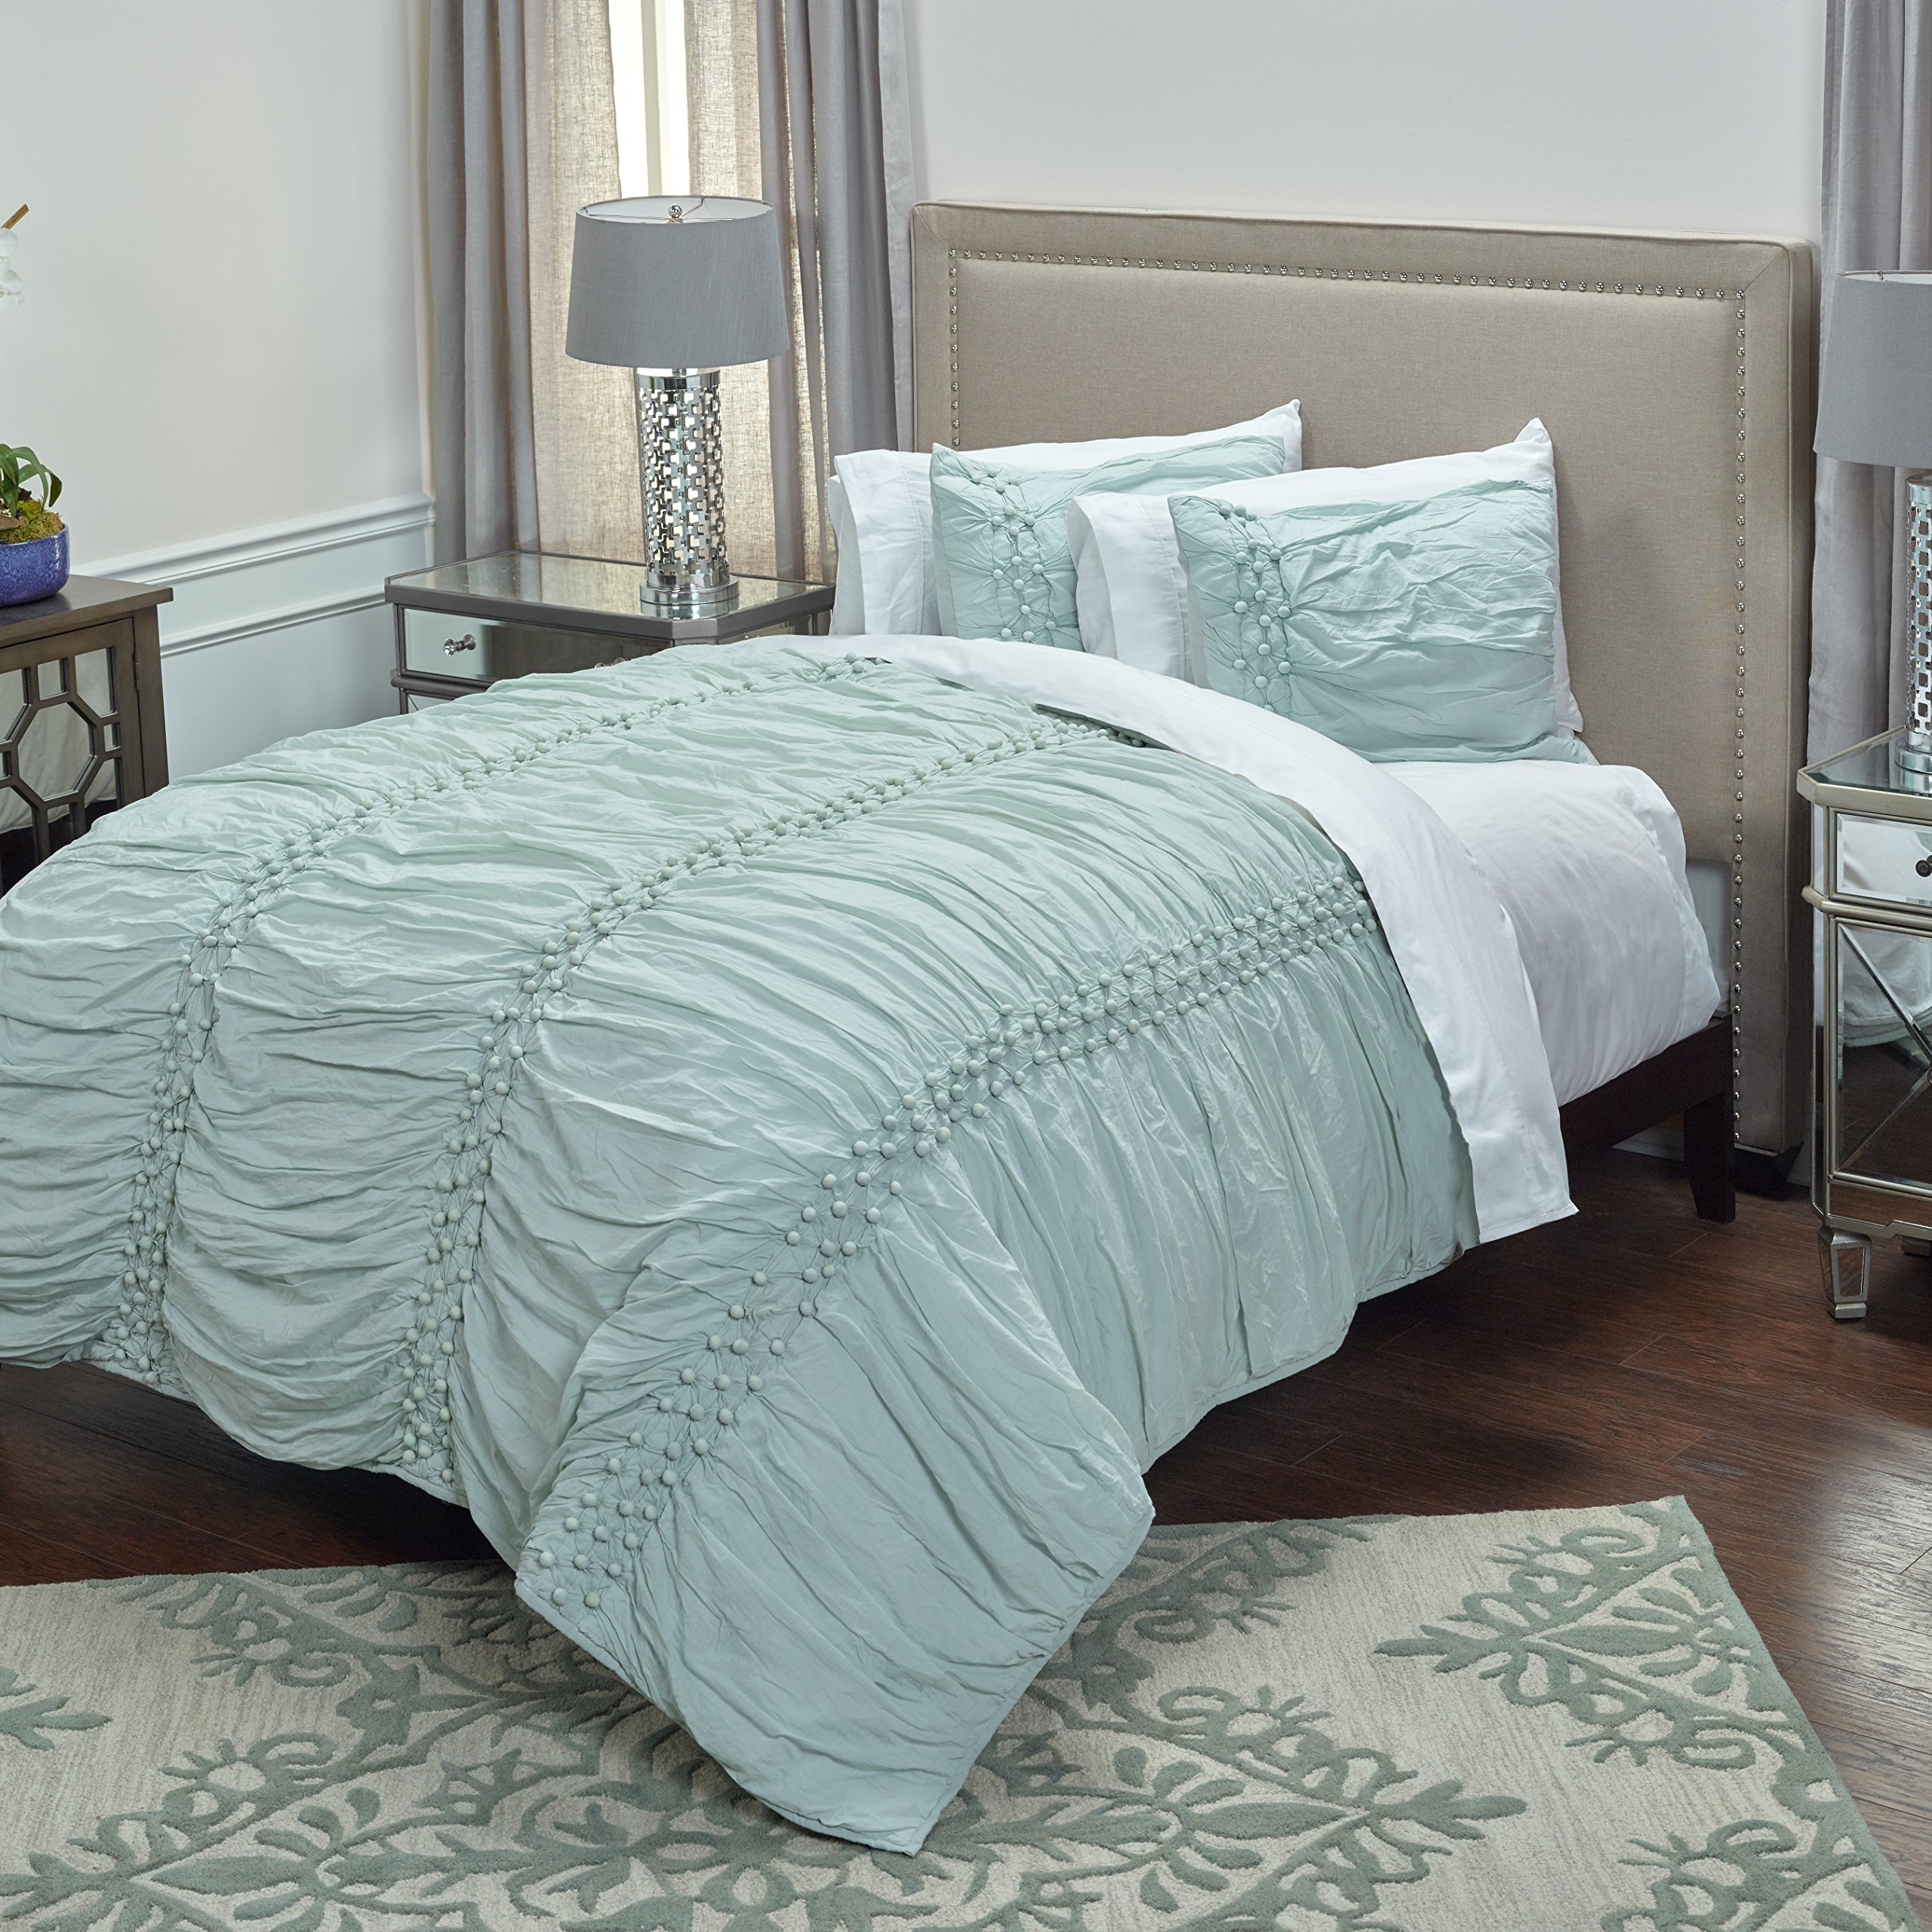 Rizzy Home QLTBT3000BX001692 Quilt, Salt Blue, King by Rizzy Home (Image #1)